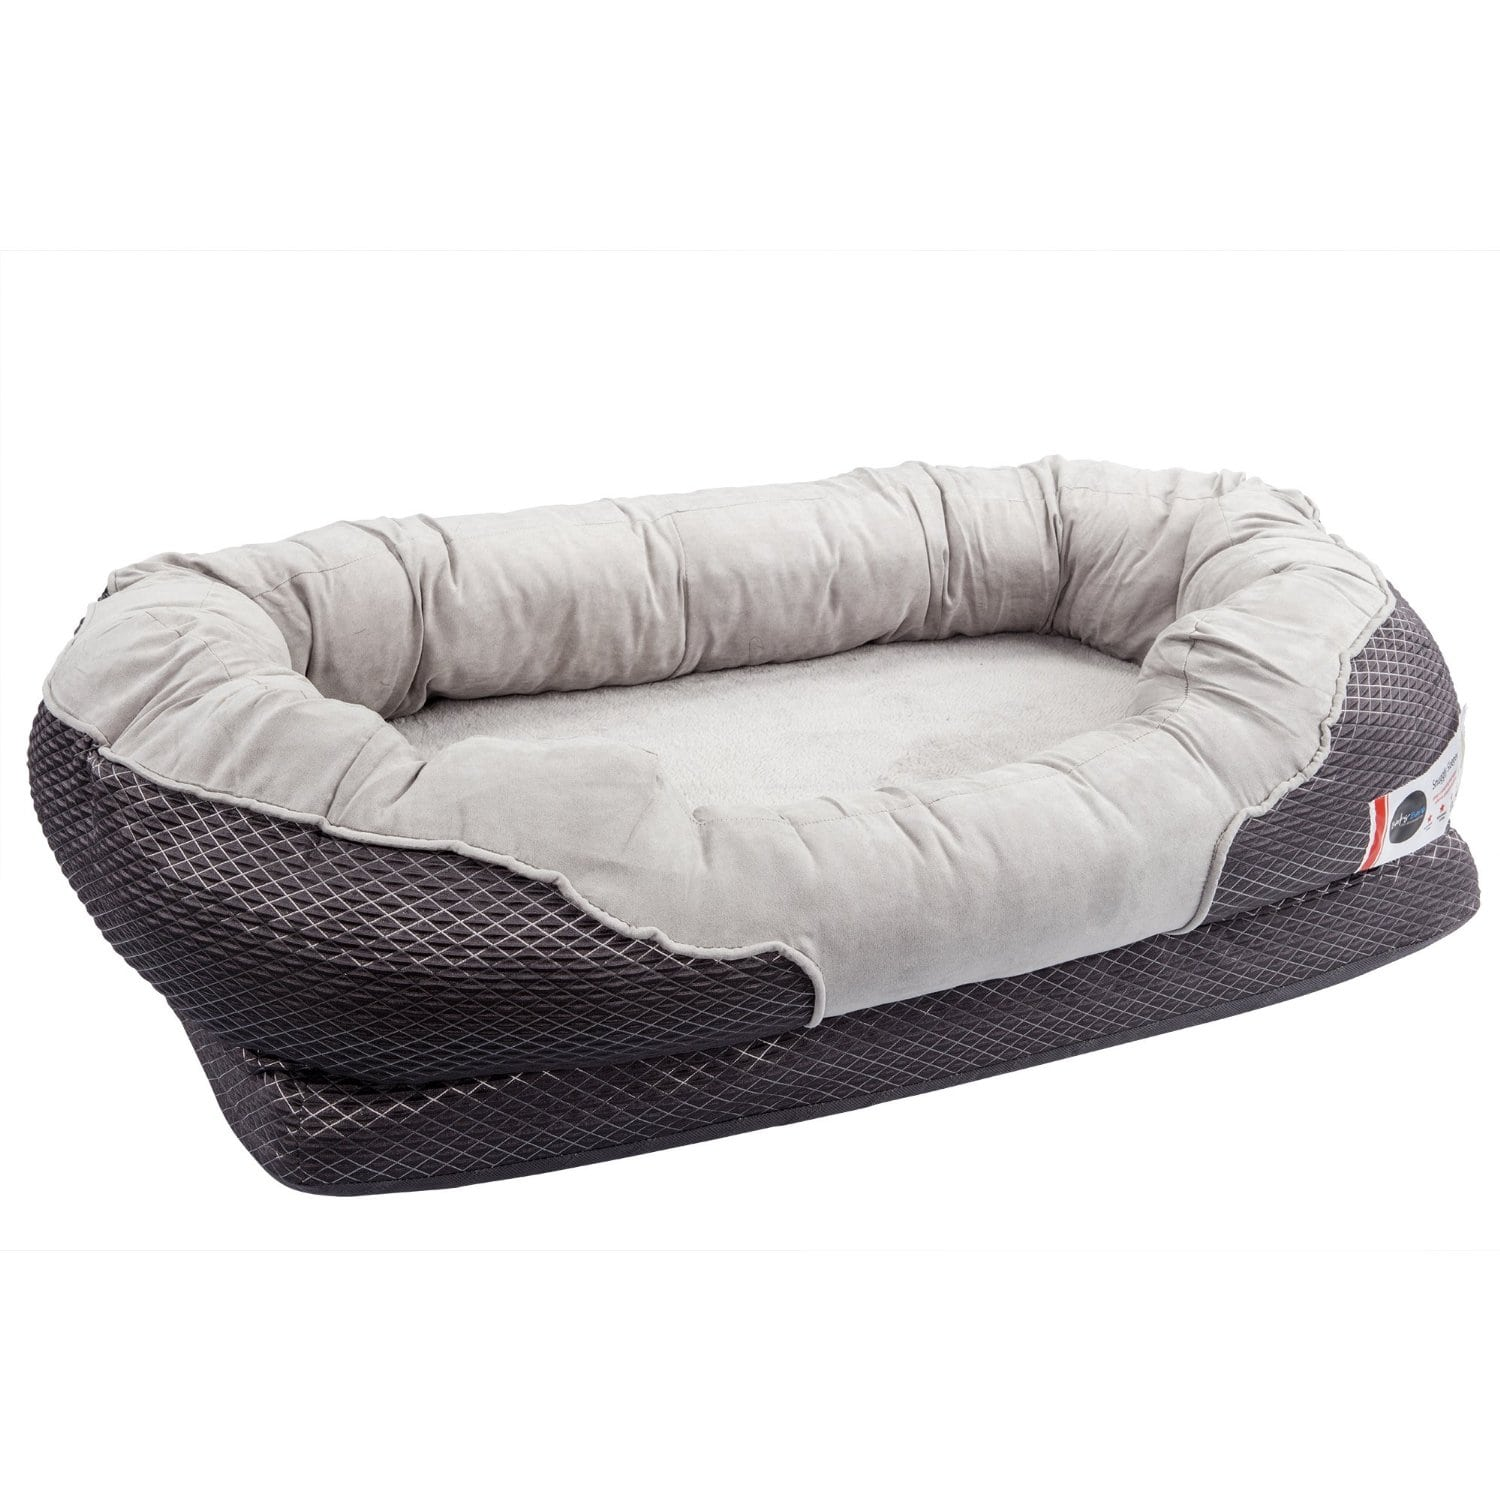 BarksBar Gray Orthopedic Dog Bed Review by www.puppyurl.com